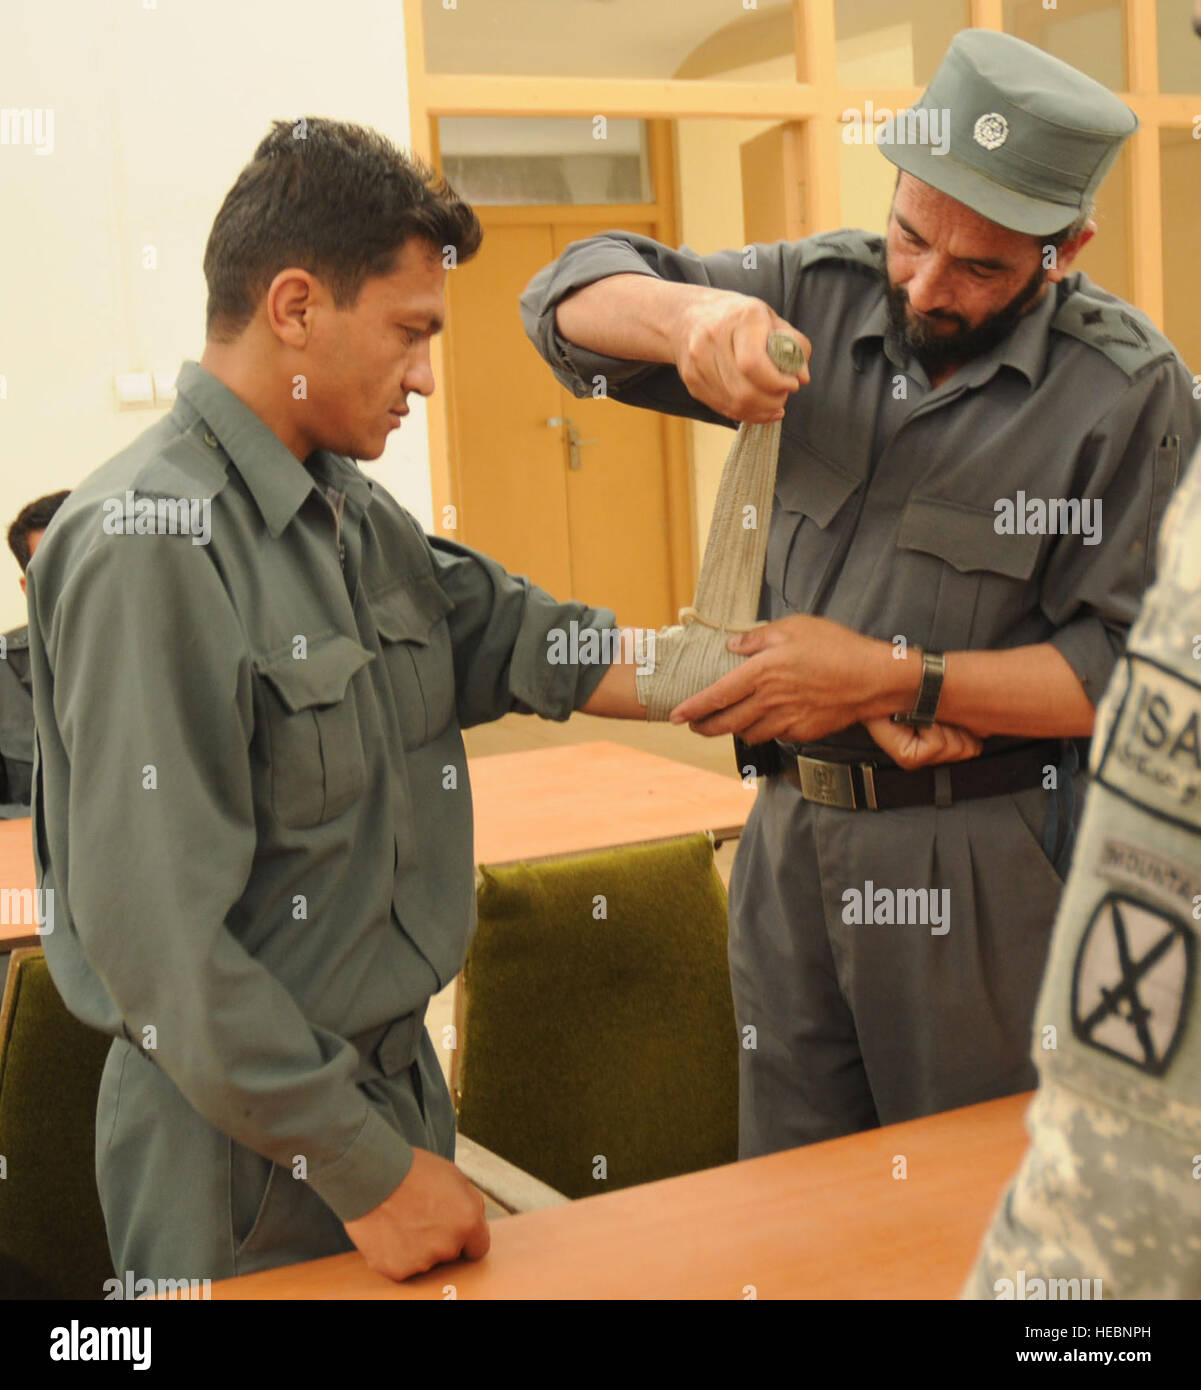 Afghan National Police Maj. Aminullah practices wrapping an emergency trauma bandages on ANP Sgt. Jaleel during - Stock Image